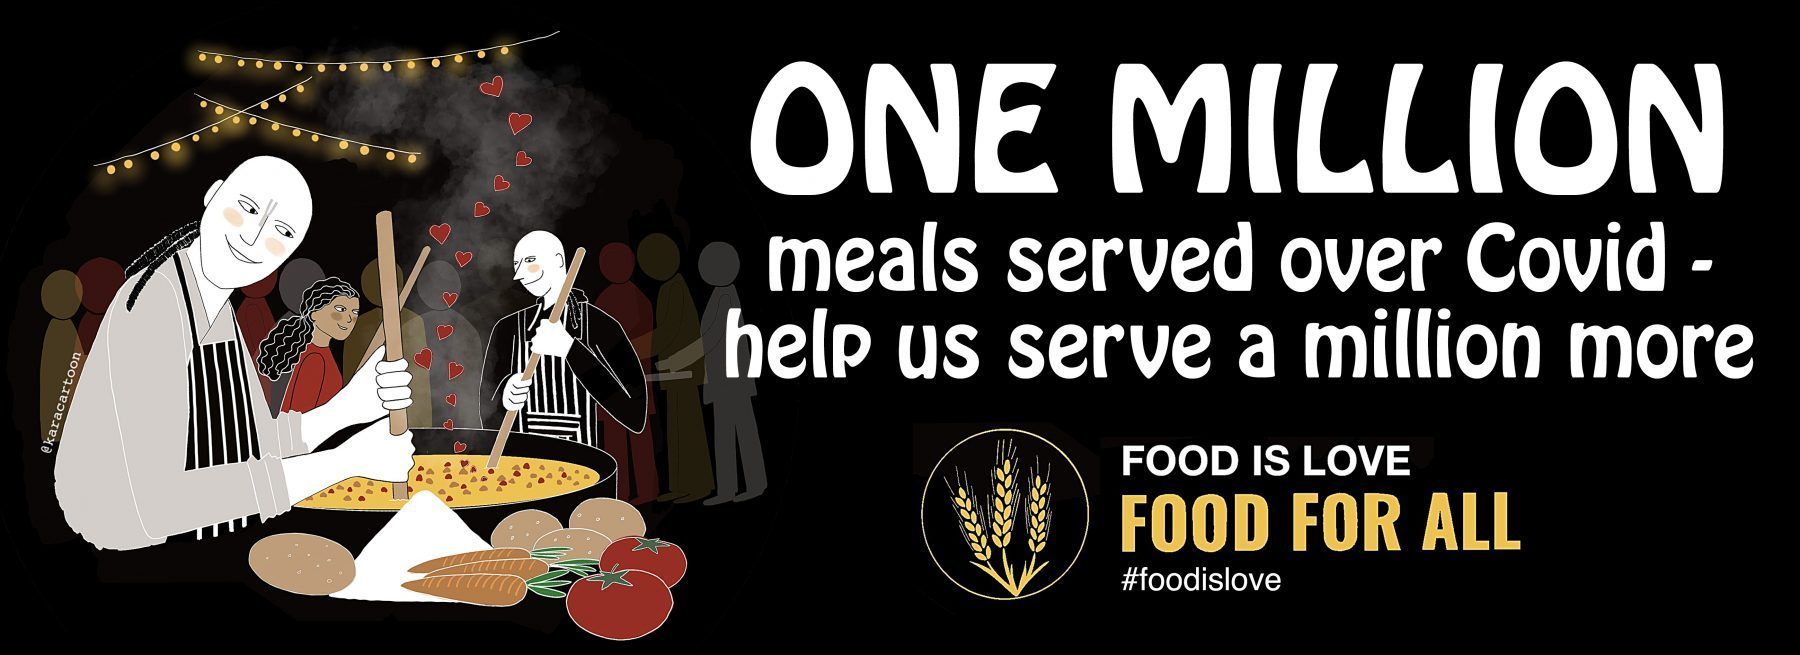 FOOD FOR ALL UK